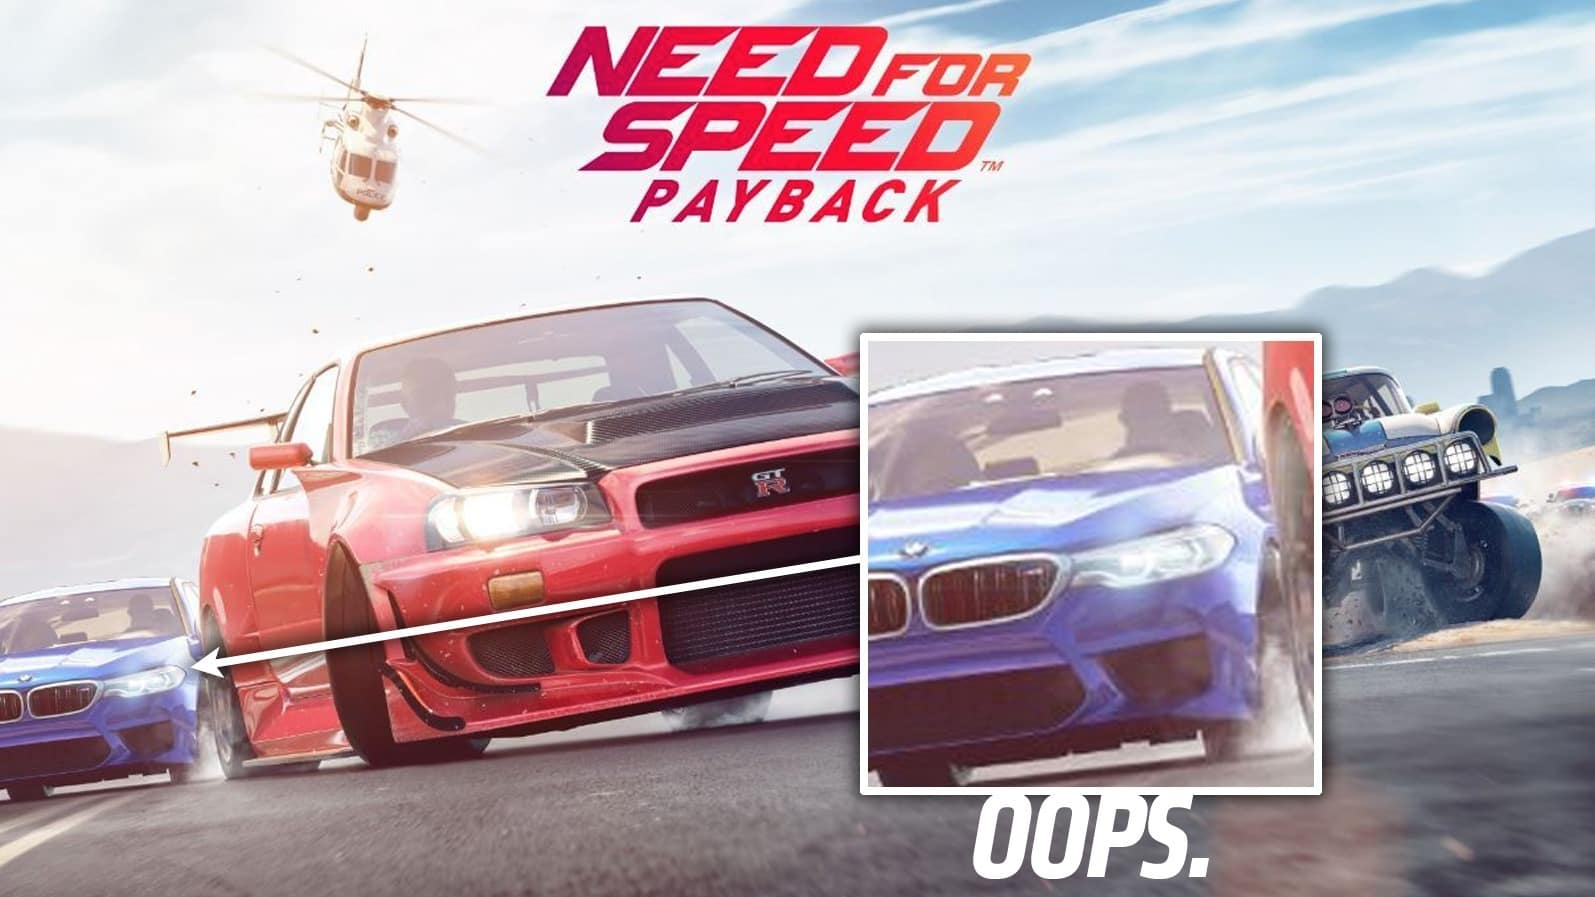 《Need for Speed Payback》意外洩密未發表 BMW M5 做封面